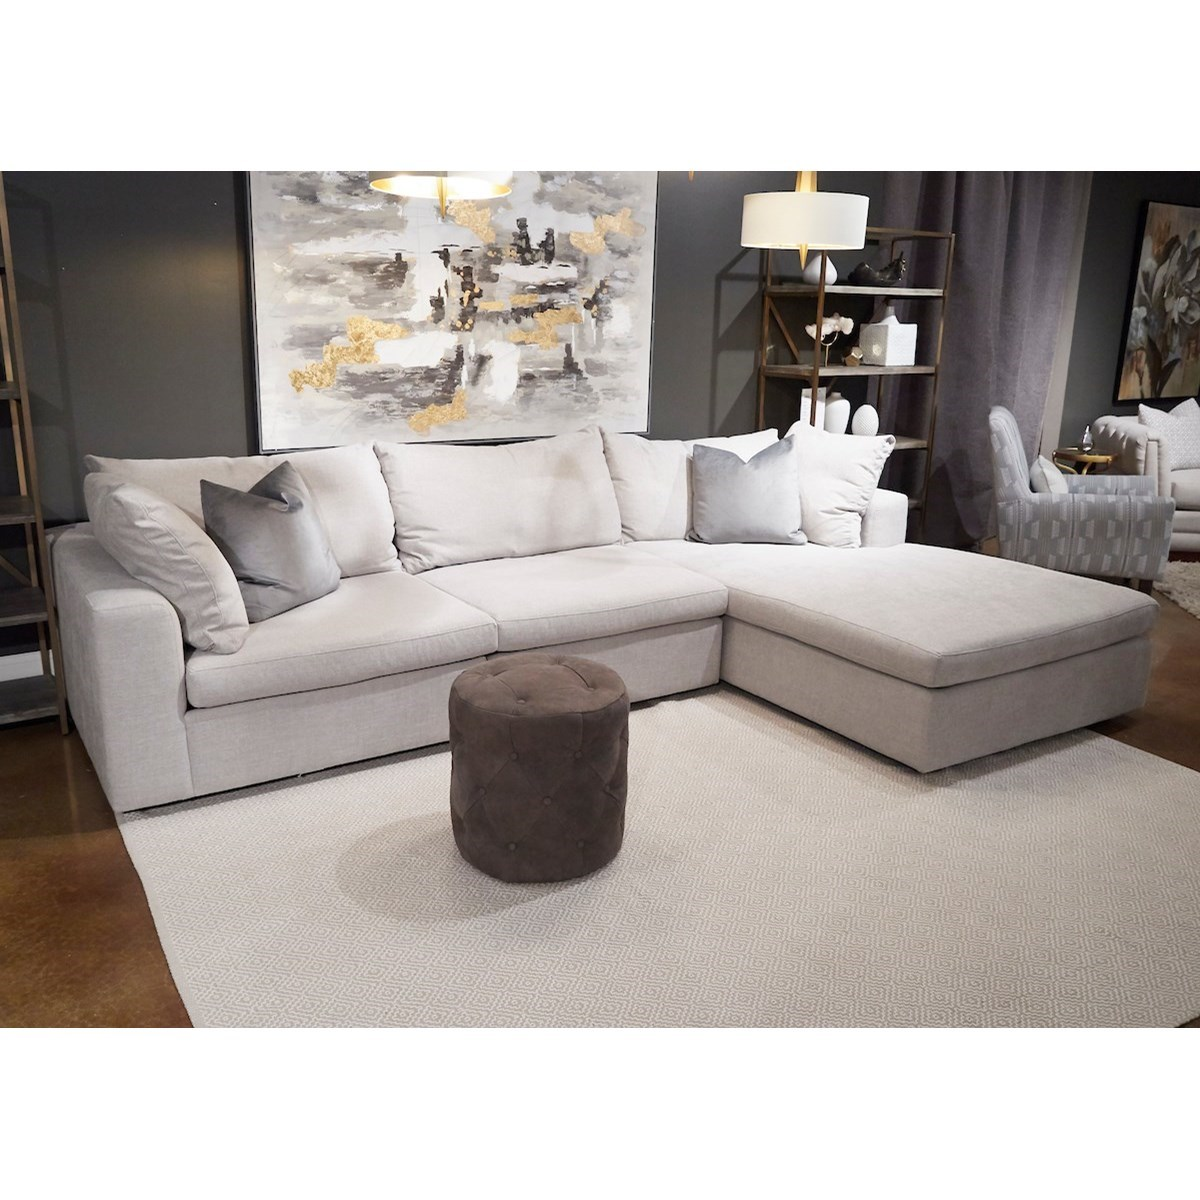 Arnell 3-Seat Sectional Sofa w/ RAF Chaise by Klaussner at Catalog Outlet